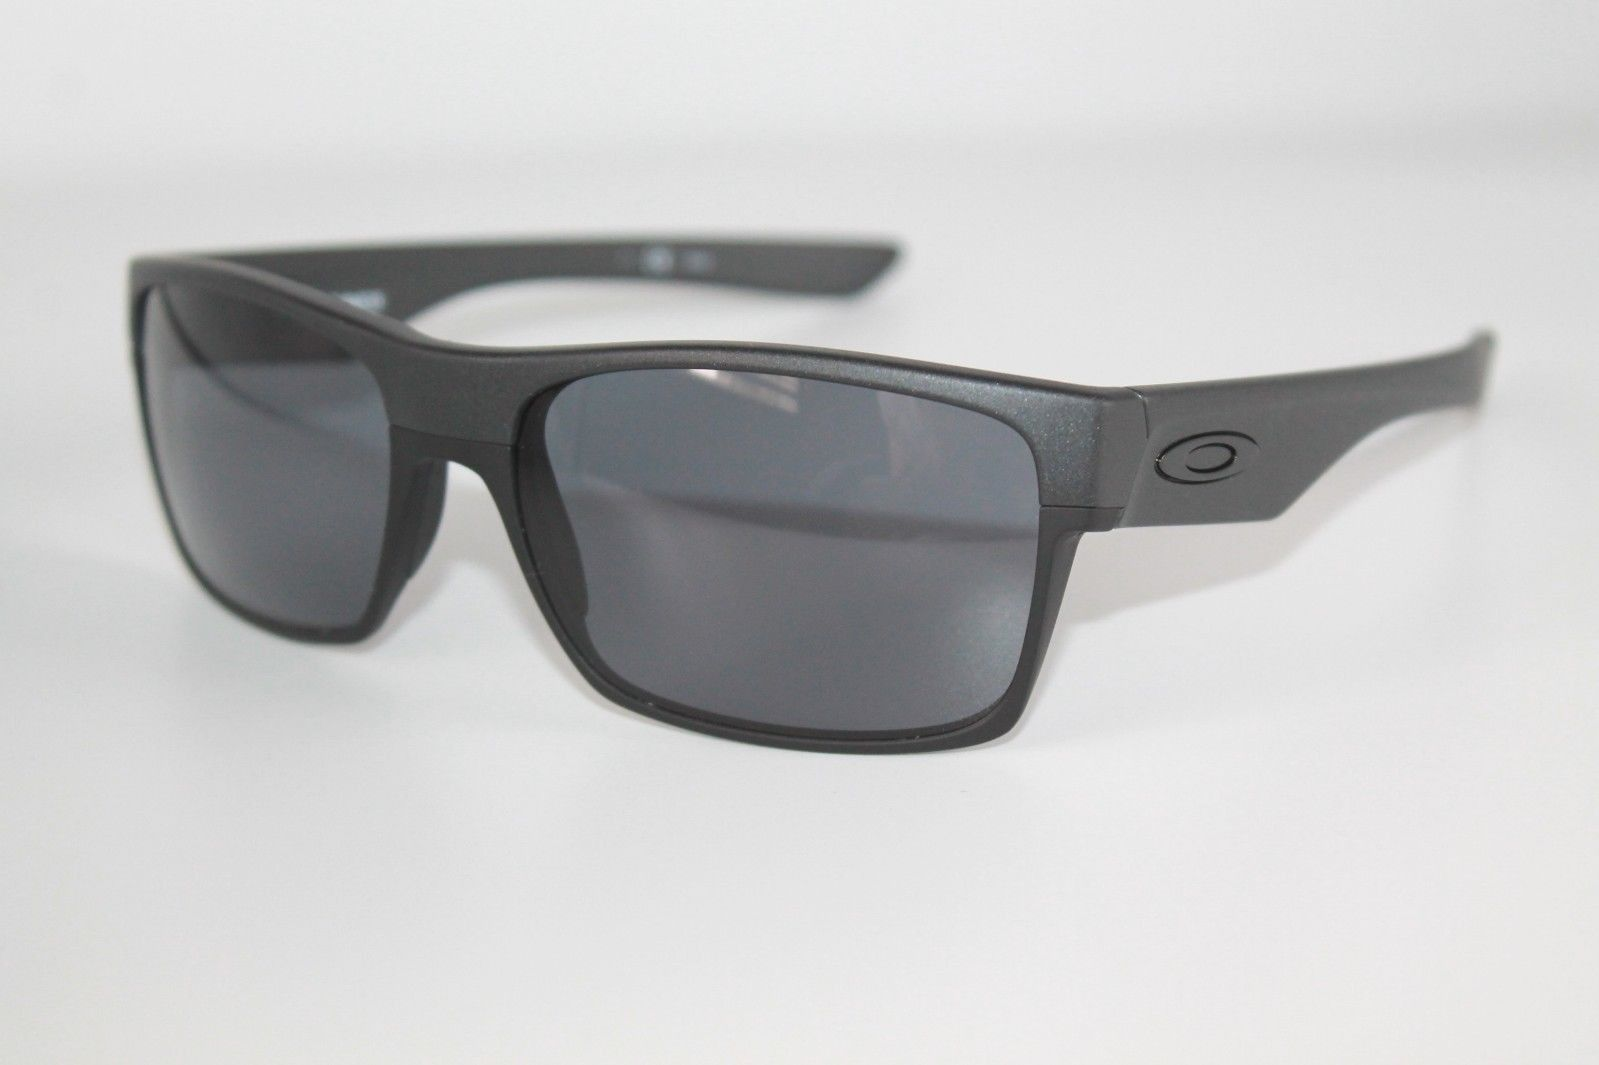 ad4c22214f Oakley Twoface Sunglasses OO9189-05 Steel and 50 similar items